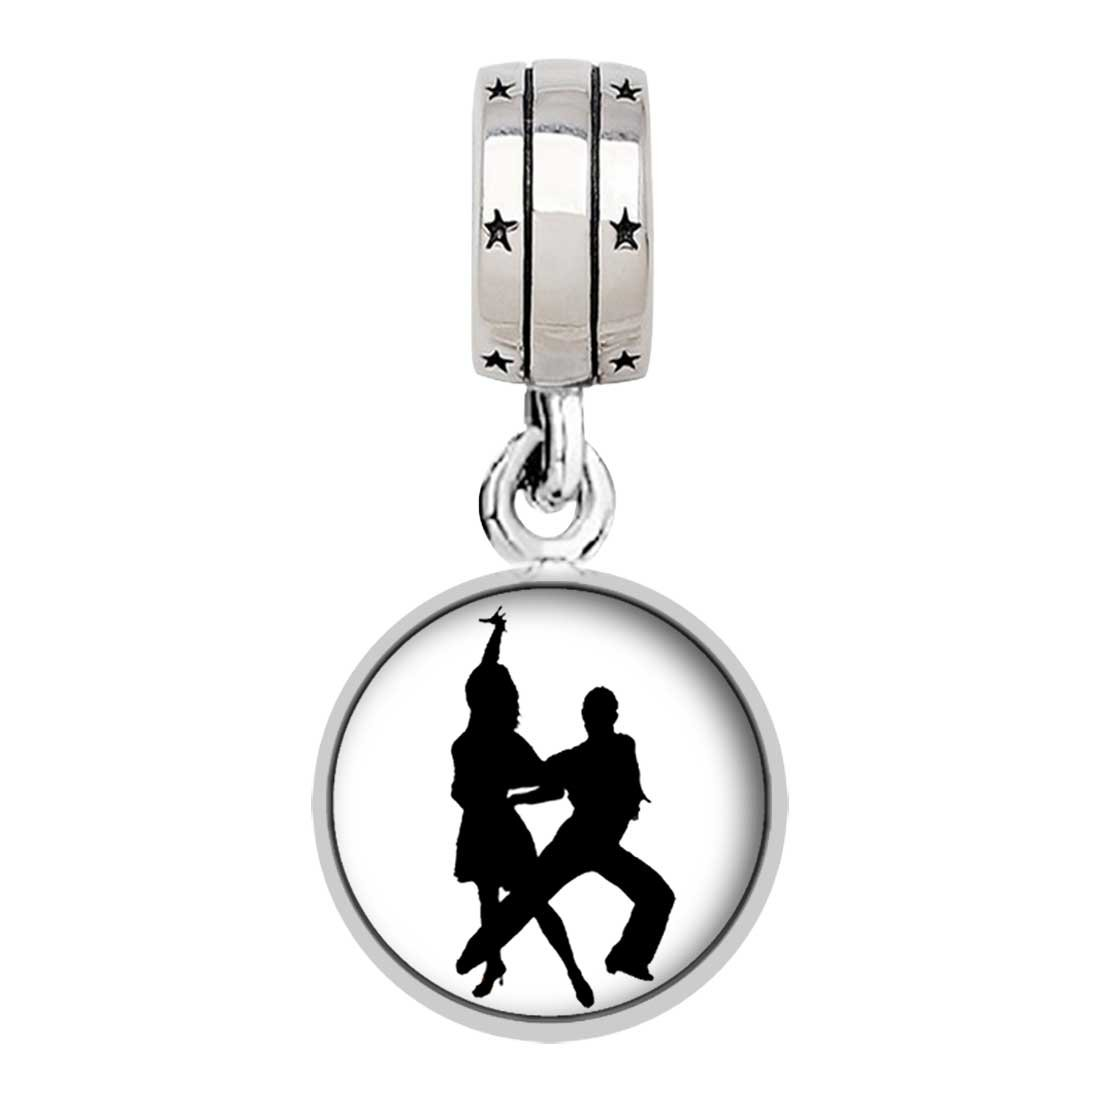 GiftJewelryShop Dance Themes Waltz Dancer Bead Charm with God All Things are Possible Religious Dangle Charm Bracelets